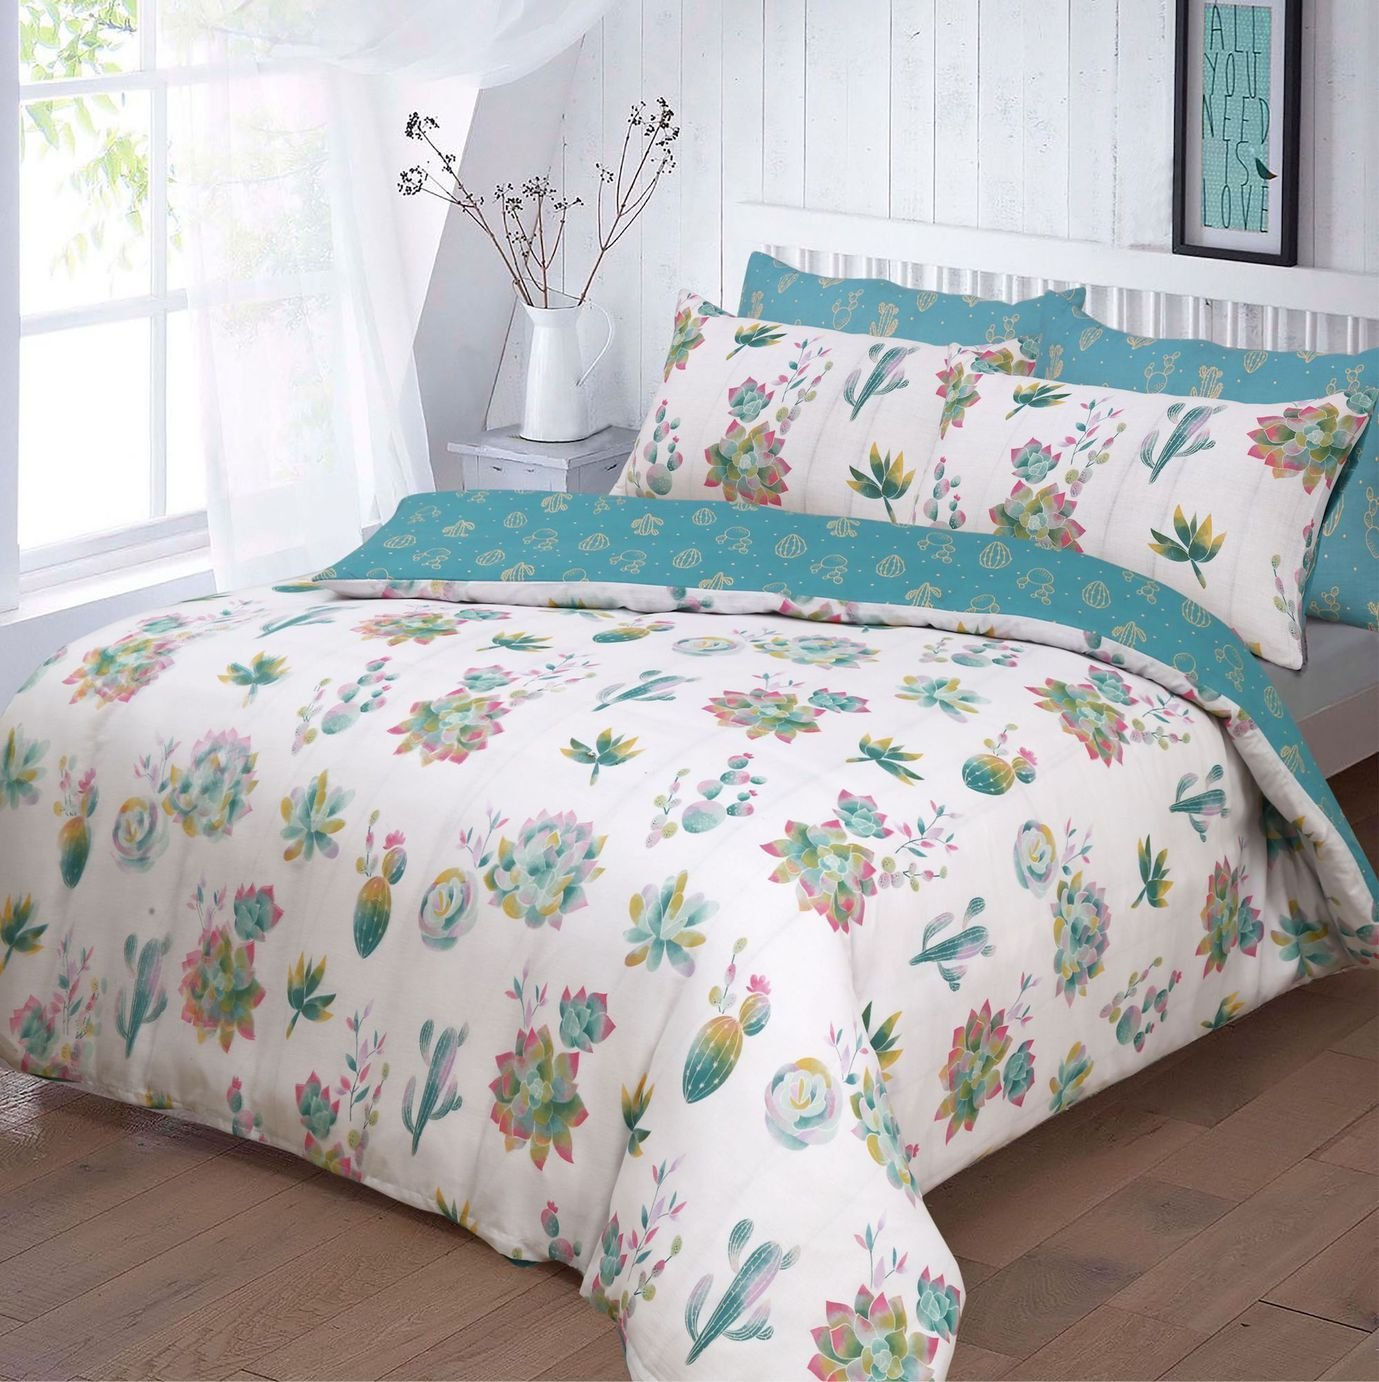 Argos Home Summer Cactus Bedding Set - Kingsize